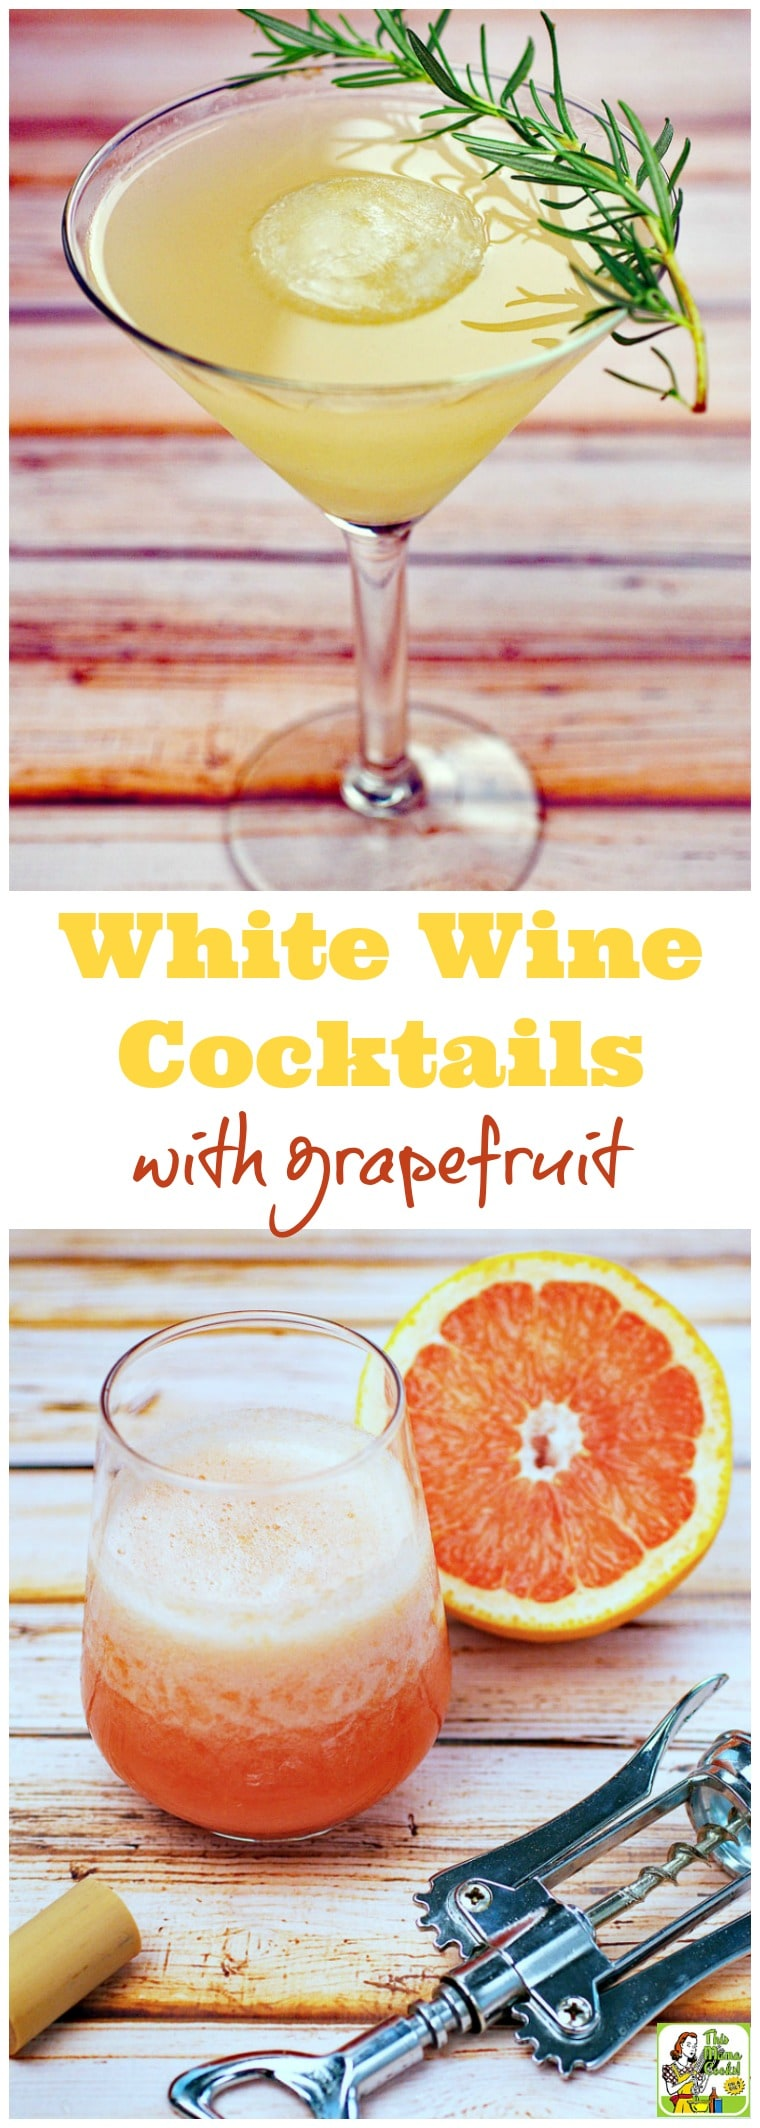 White Wine Cocktail Recipes